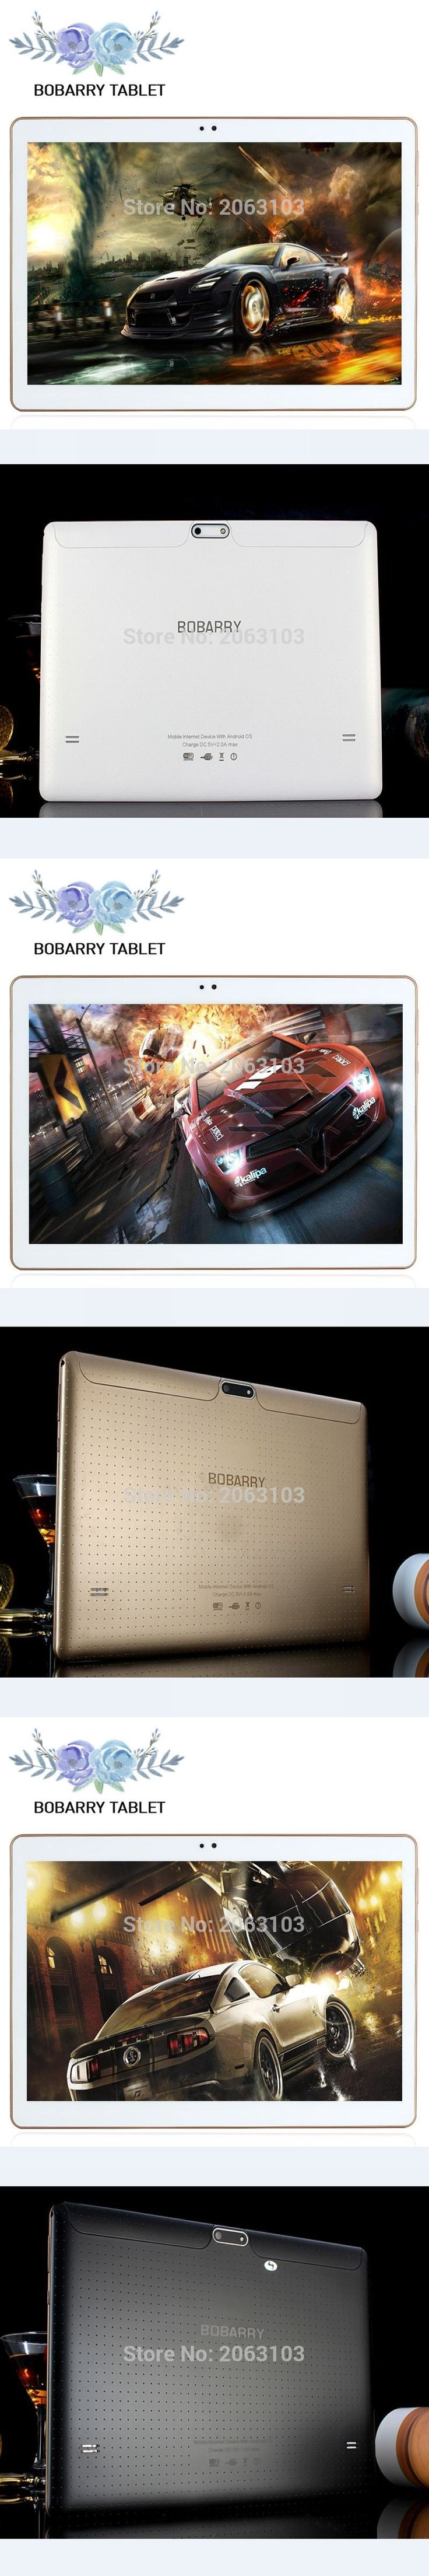 New 10.1 inch Original Design 3G Phone Call Android 6.0 Quad Core IPS pc Tablet WiFi 2G+16G 7 8 9 10 android tablet pc 2GB 16GB